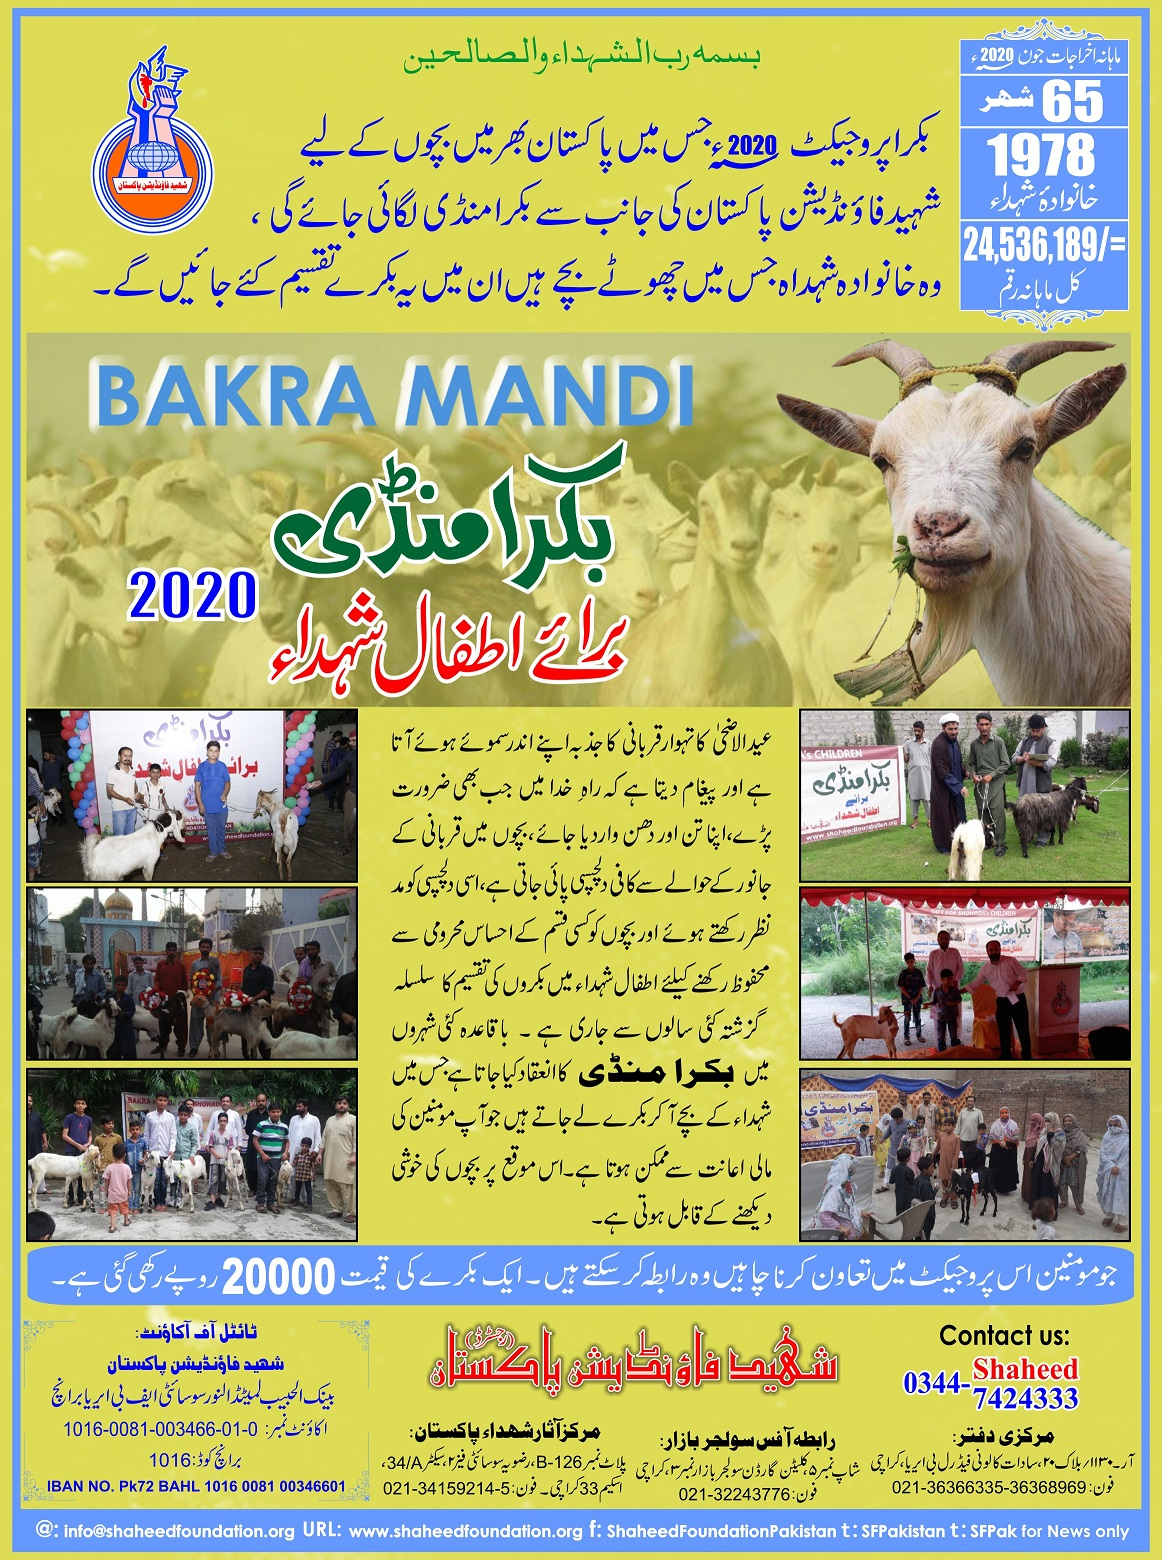 Bakra Mandi 2020 for Martyrs Children